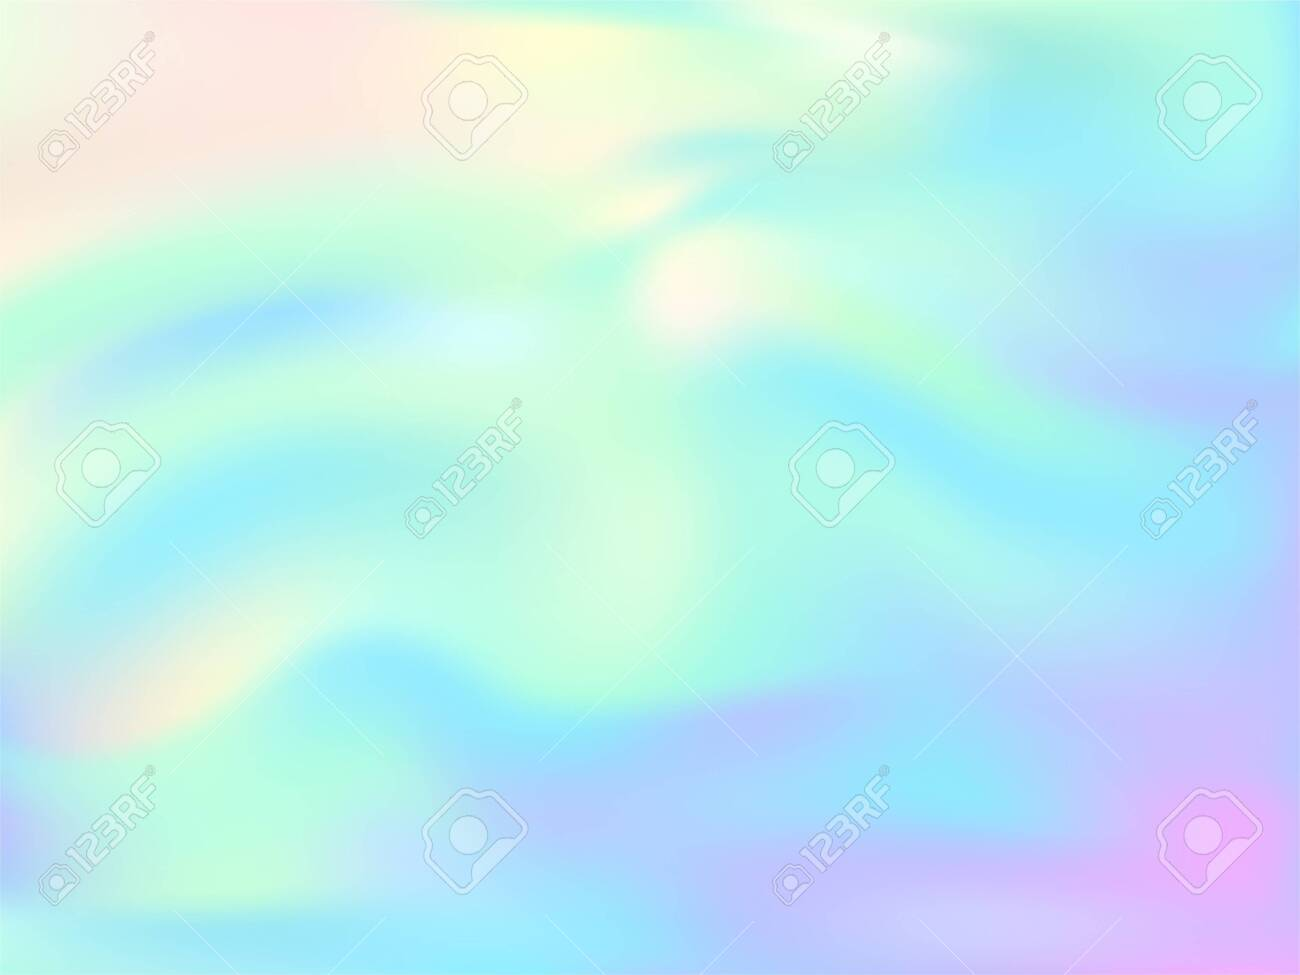 Blurred Hologram Texture Gradient Wallpaper Lucid Pastel Rainbow Royalty Free Cliparts Vectors And Stock Illustration Image 139646099